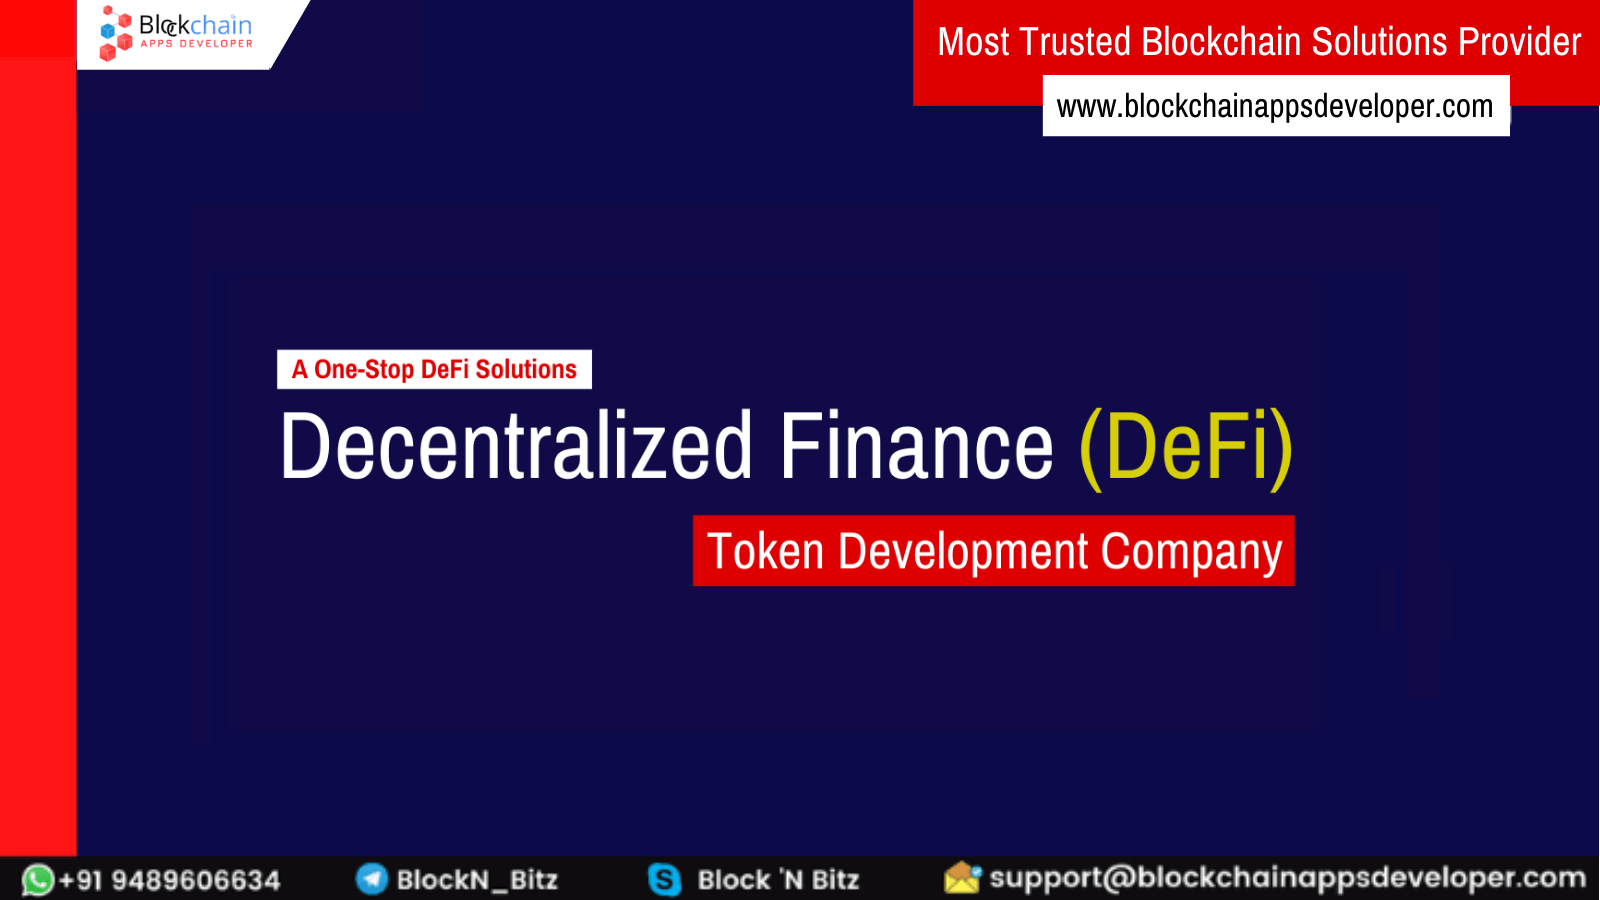 Decentralized Finance (DeFi) Token Development Company - A One-Stop DeFi Solutions Provider